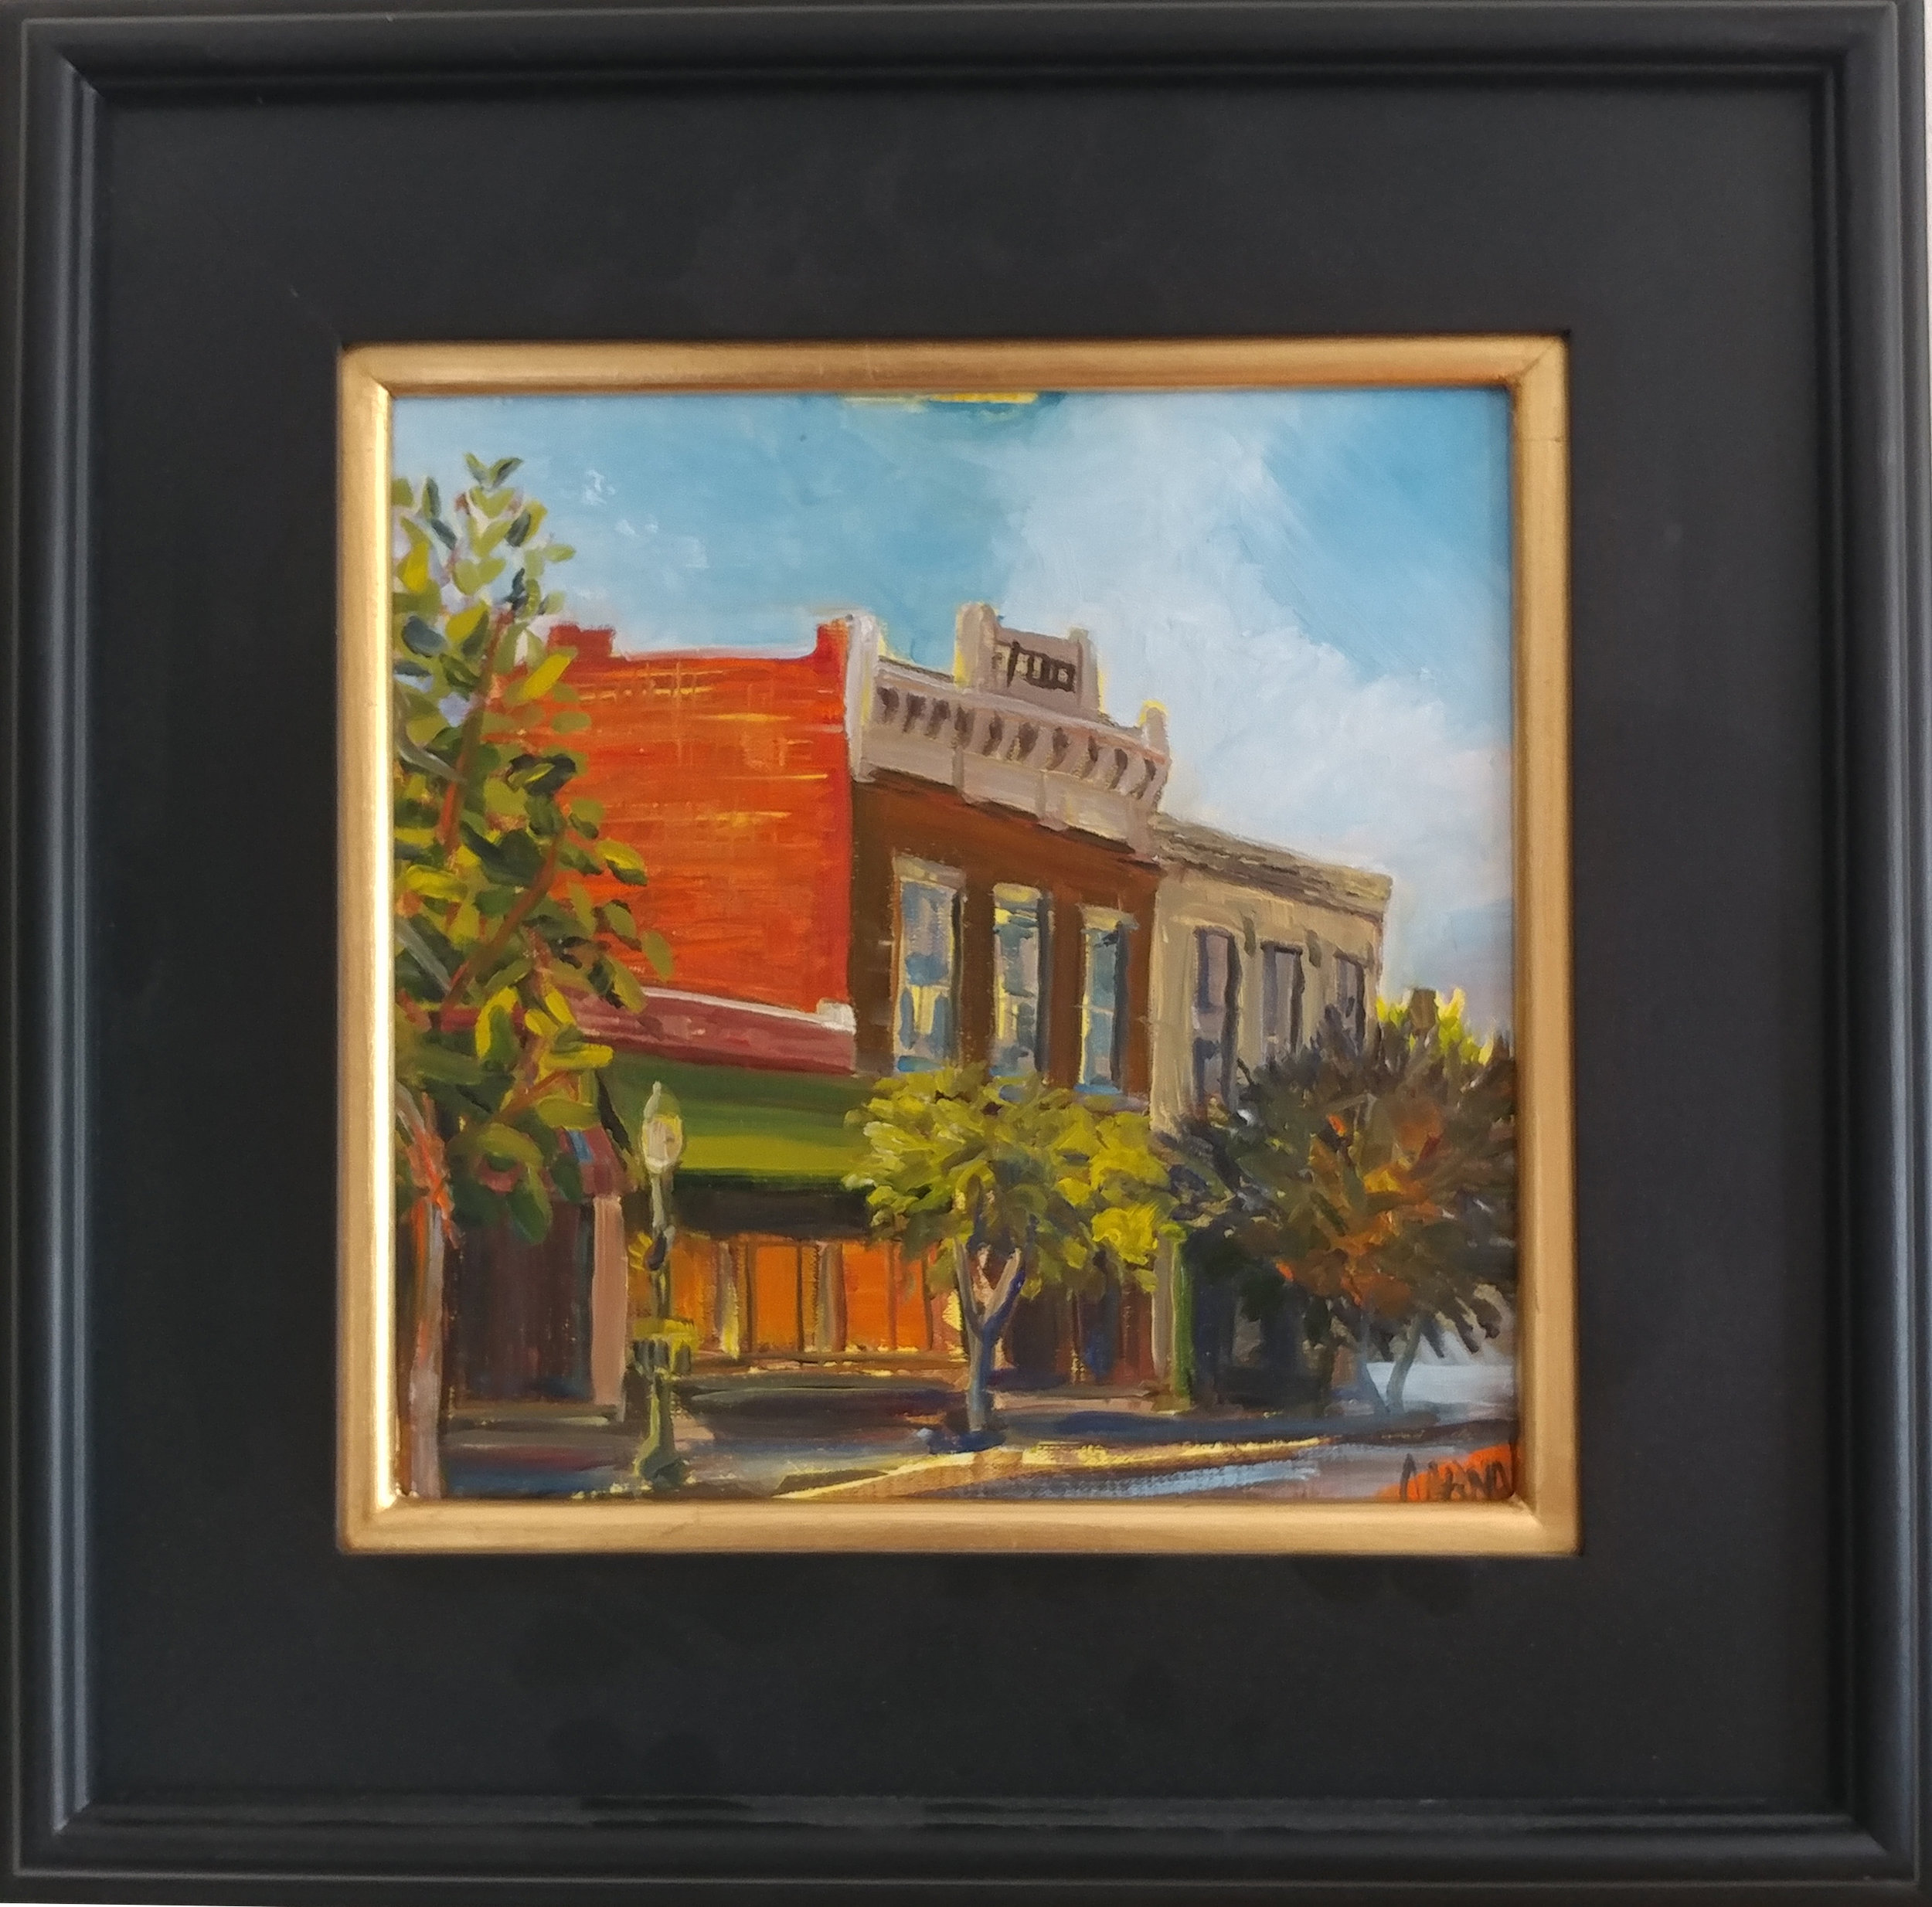 Tonganoxie plein air- Evans Building Westward. 10X10 oil on board, with 10X110 mahogany frame.